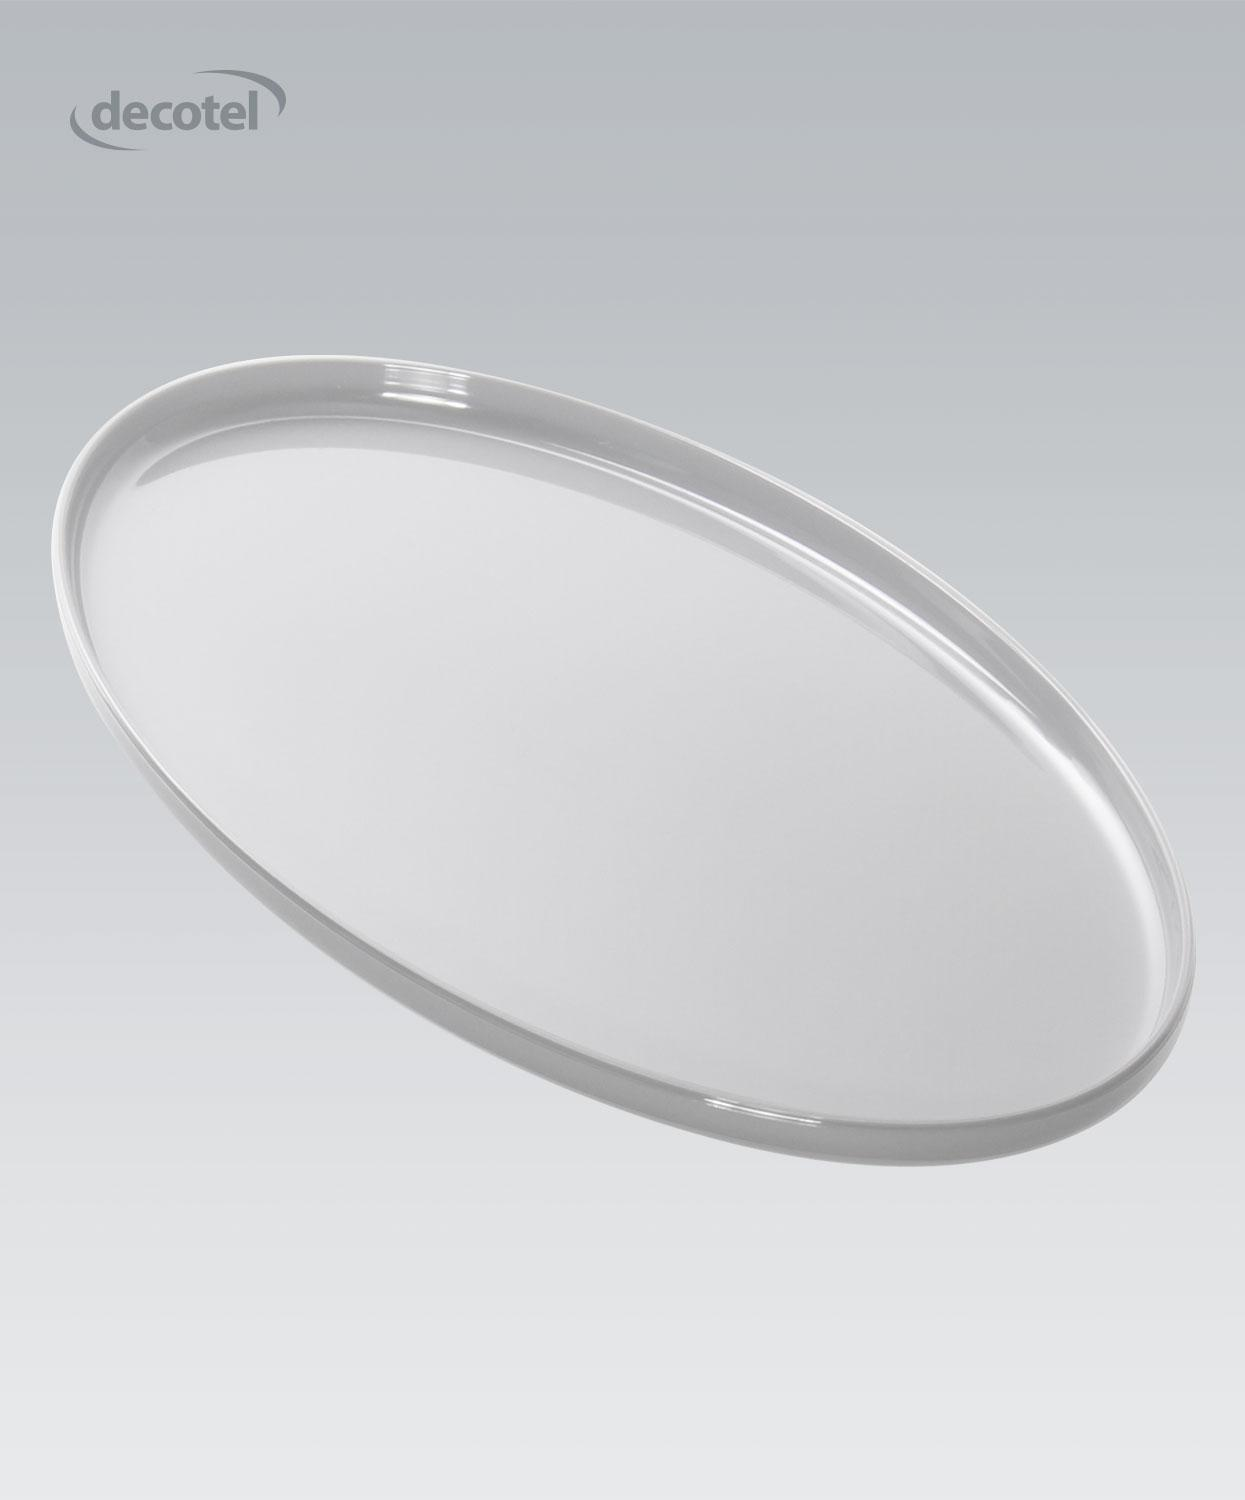 Viscount Small Oval Tray White